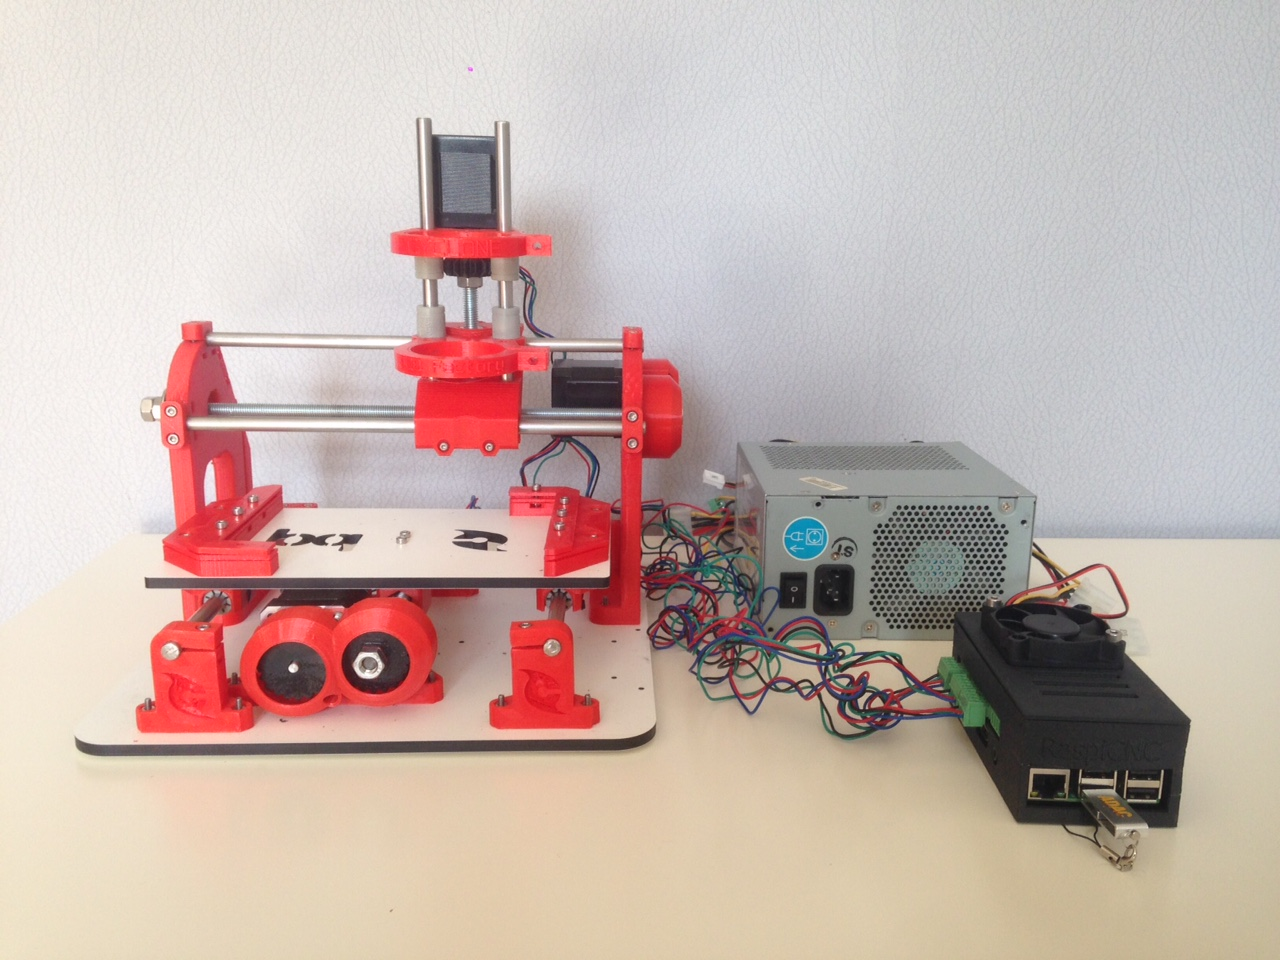 Presenting our Open Source PCB milling machine - MyBotShop.de